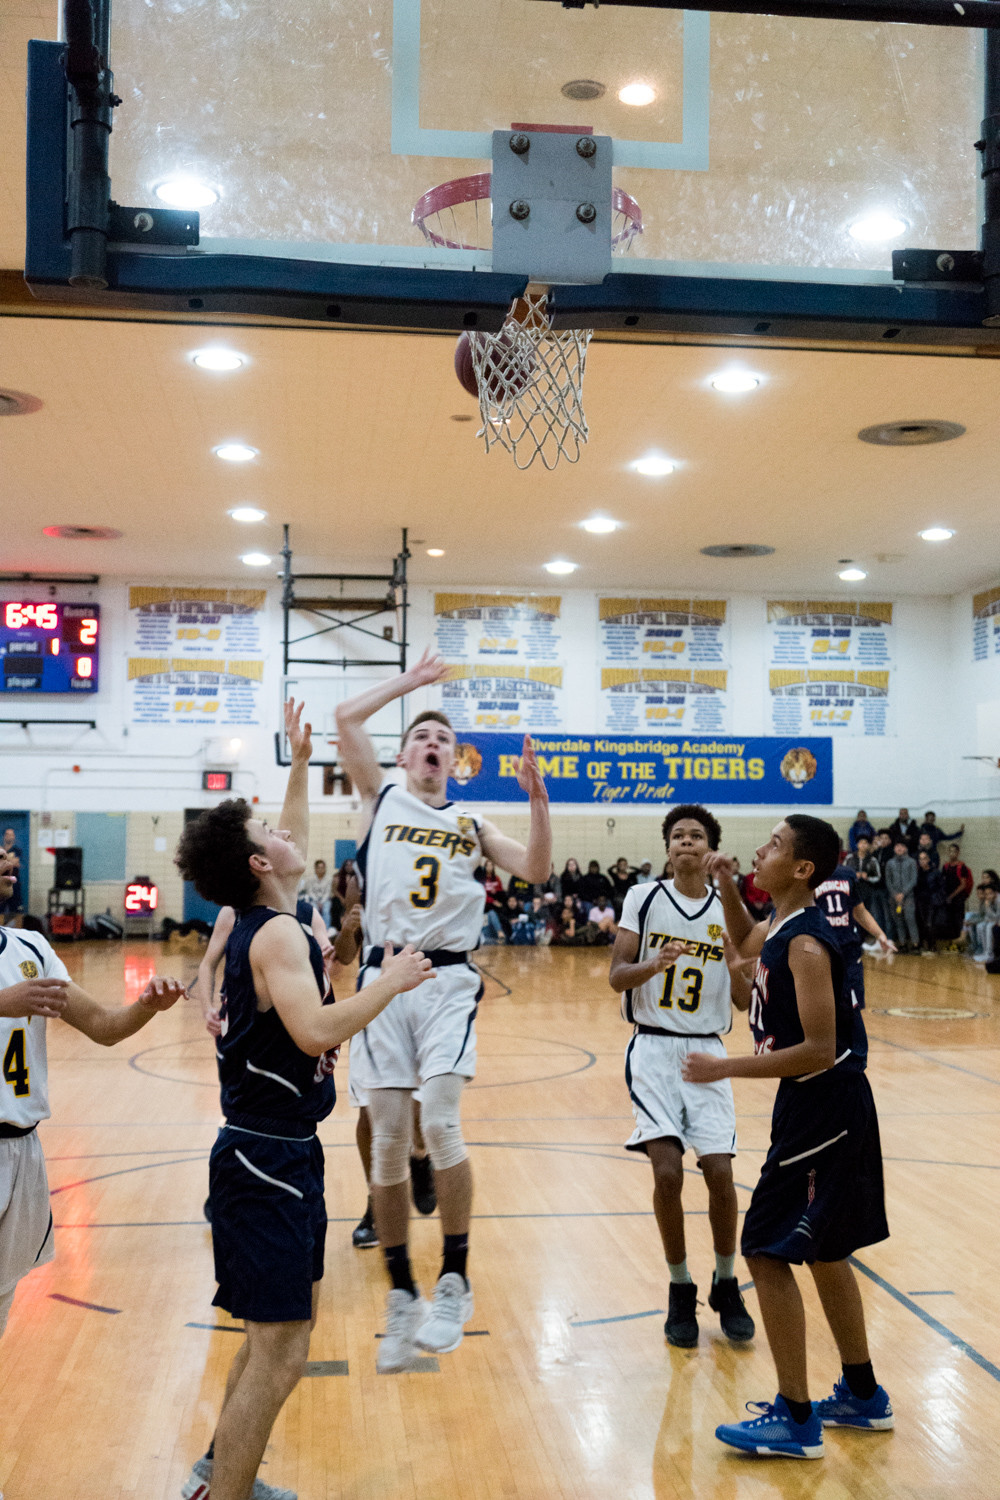 RKA senior guard Will Feldman (3) poured in 20 points for the Tigers in their win over Gregorio Luperon last weekend.